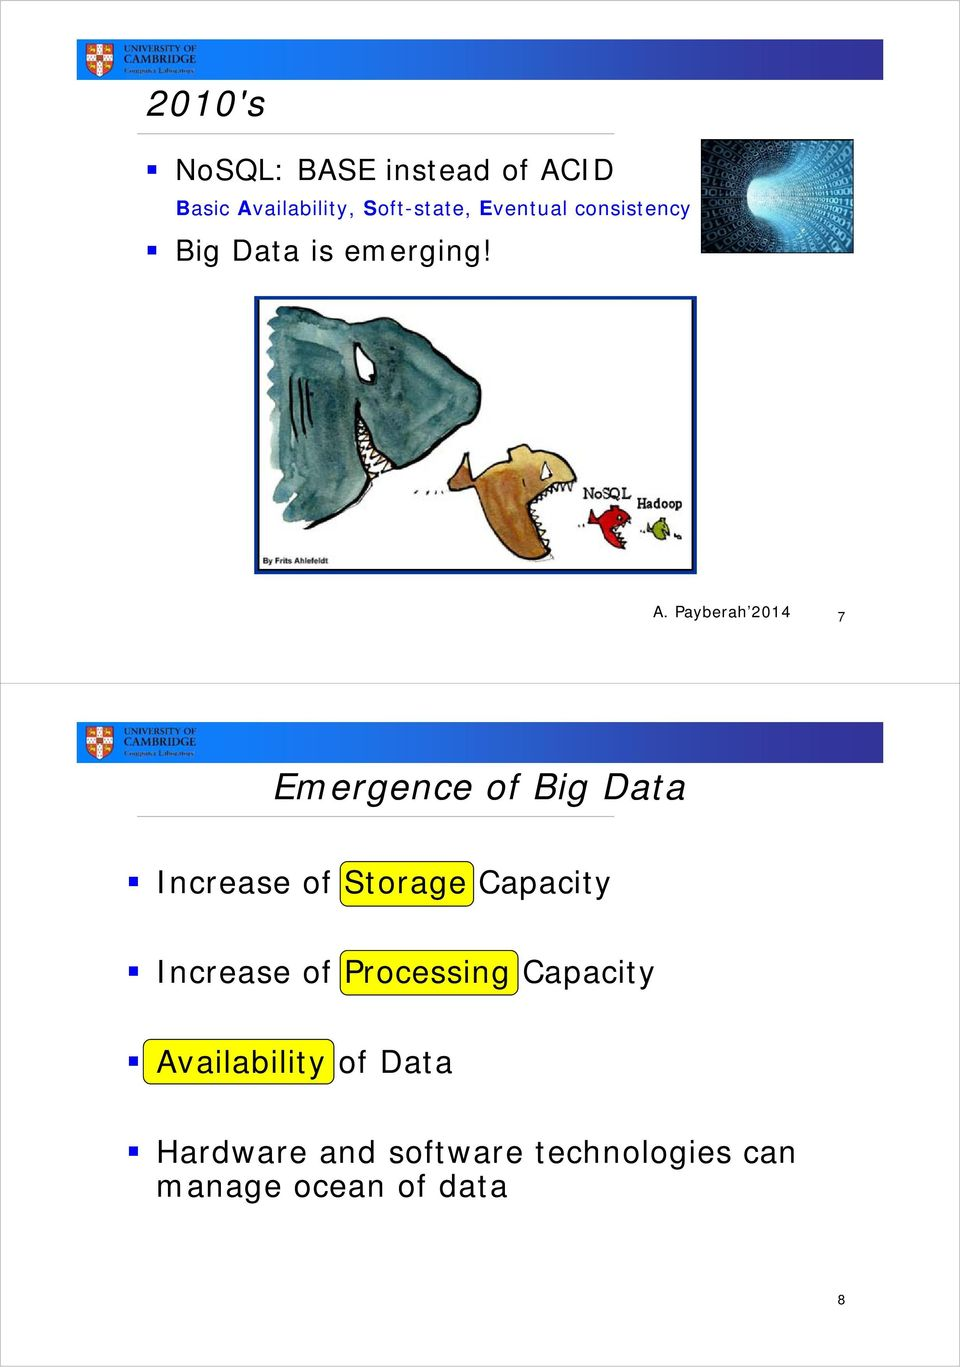 Payberah 2014 7 Emergence of Big Data Increase of Storage Capacity